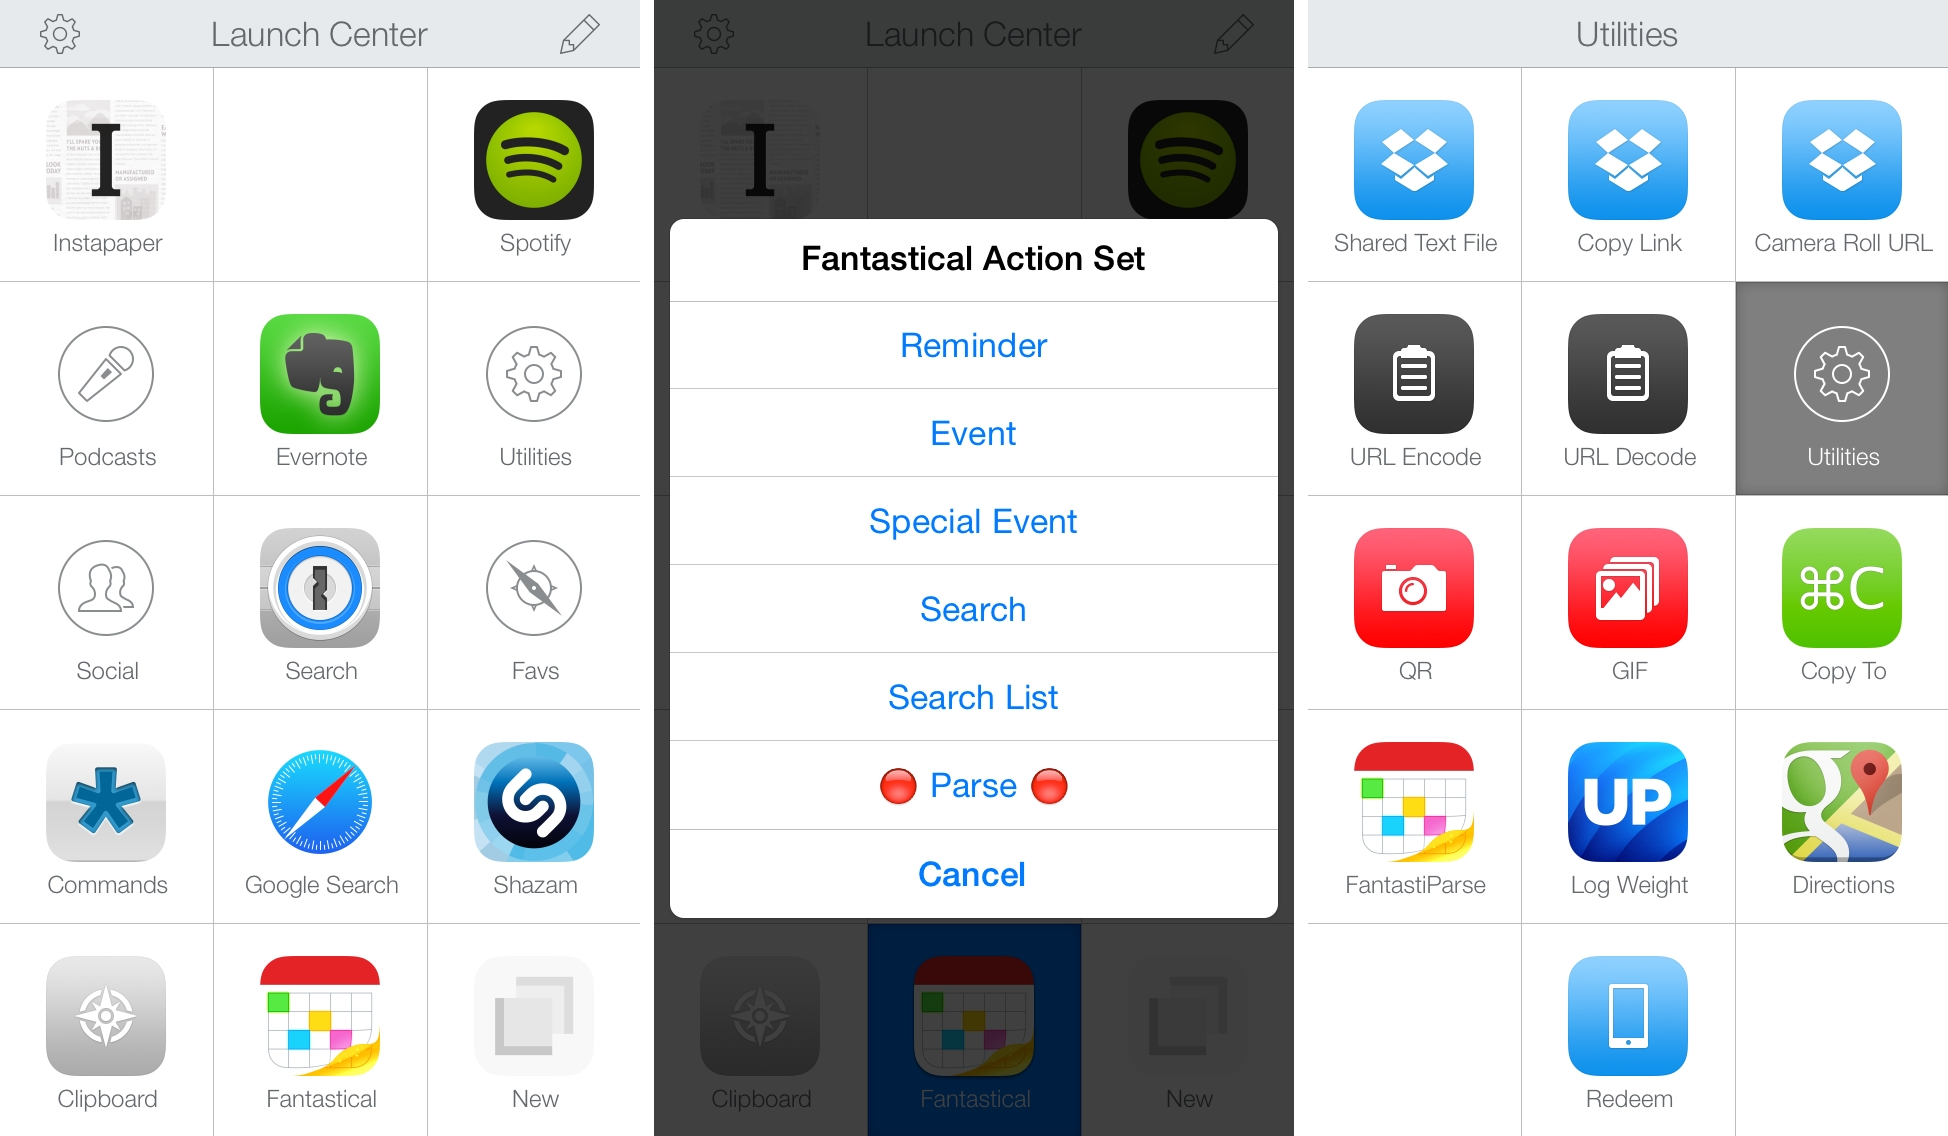 Automating iOS: A Comprehensive and Updated Guide to Launch Center